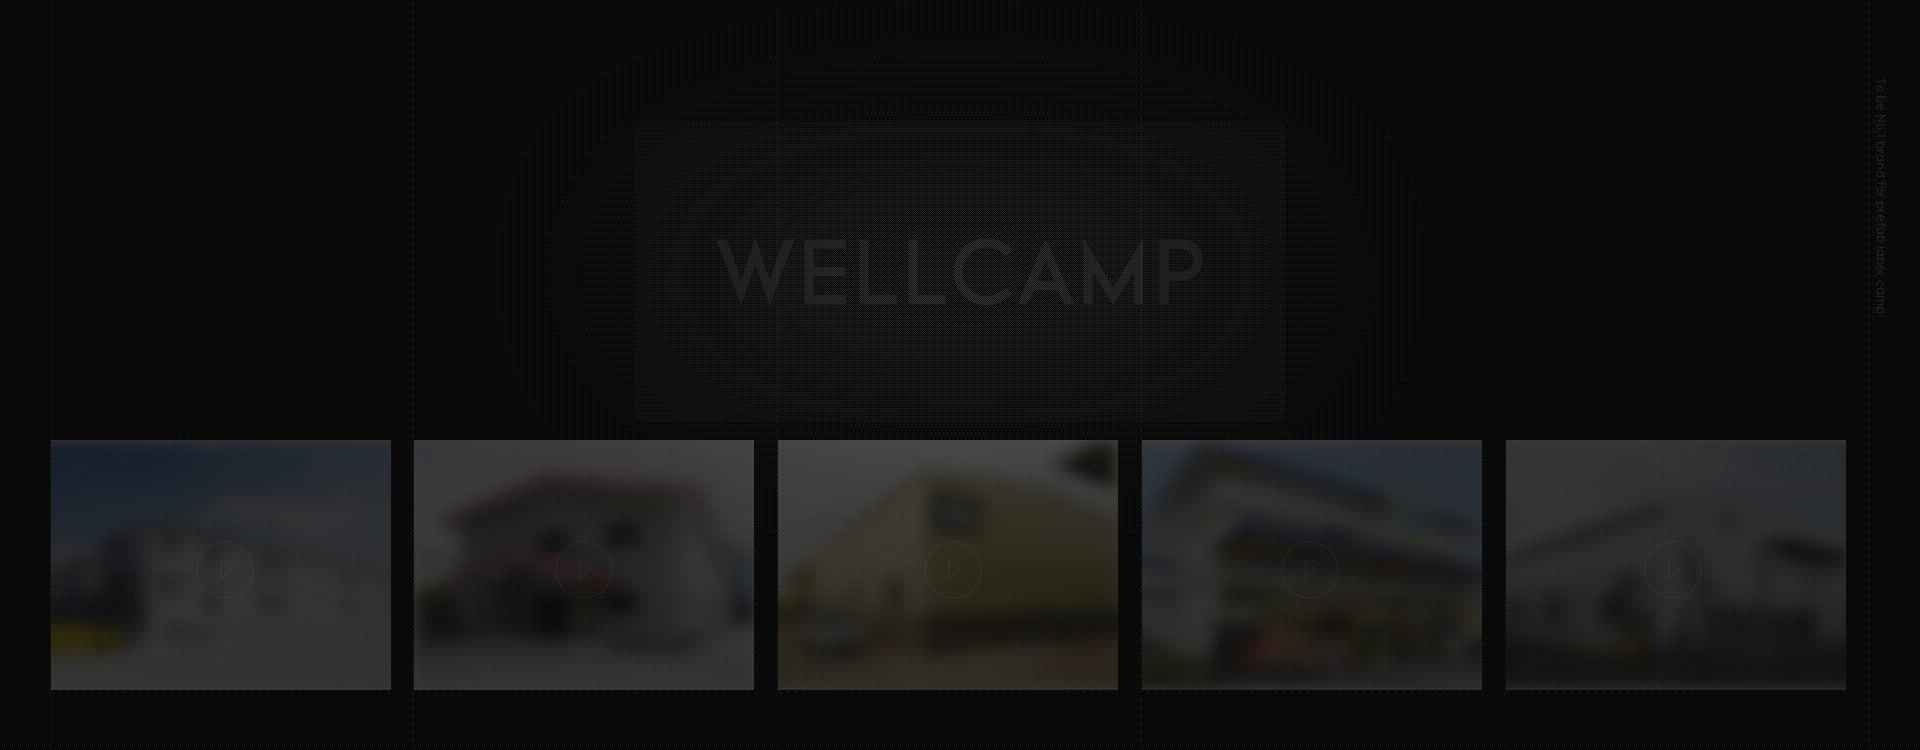 Professional Manufacturing Of Product Videos & Product Videos From-WELLCAMP, WELLCAMP prefab house, WELLCAMP container house